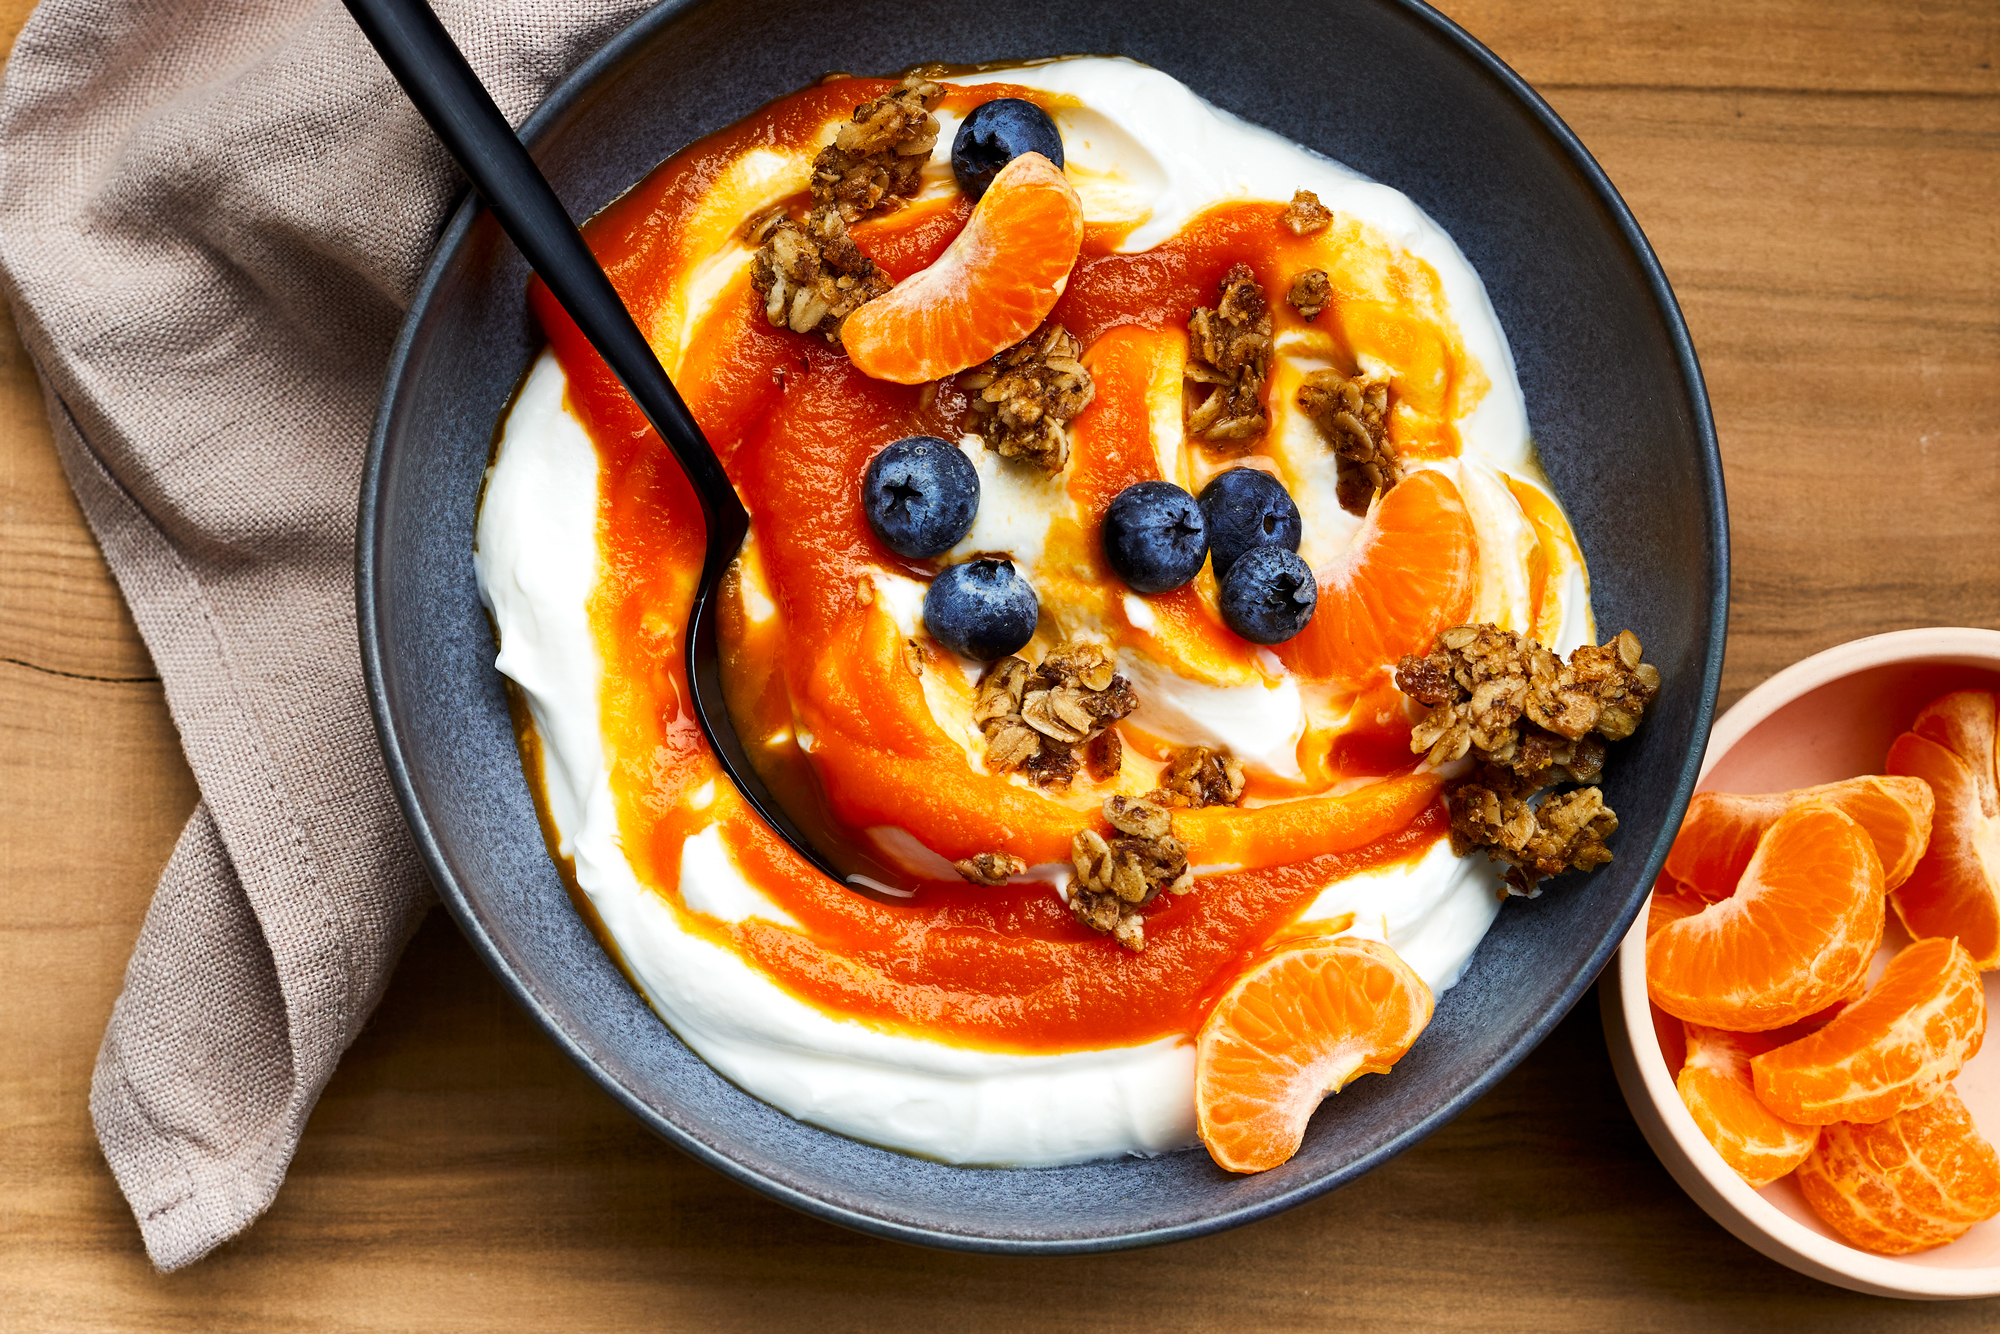 Carrot Cake Marmalade with Yogurt and Fresh Fruit